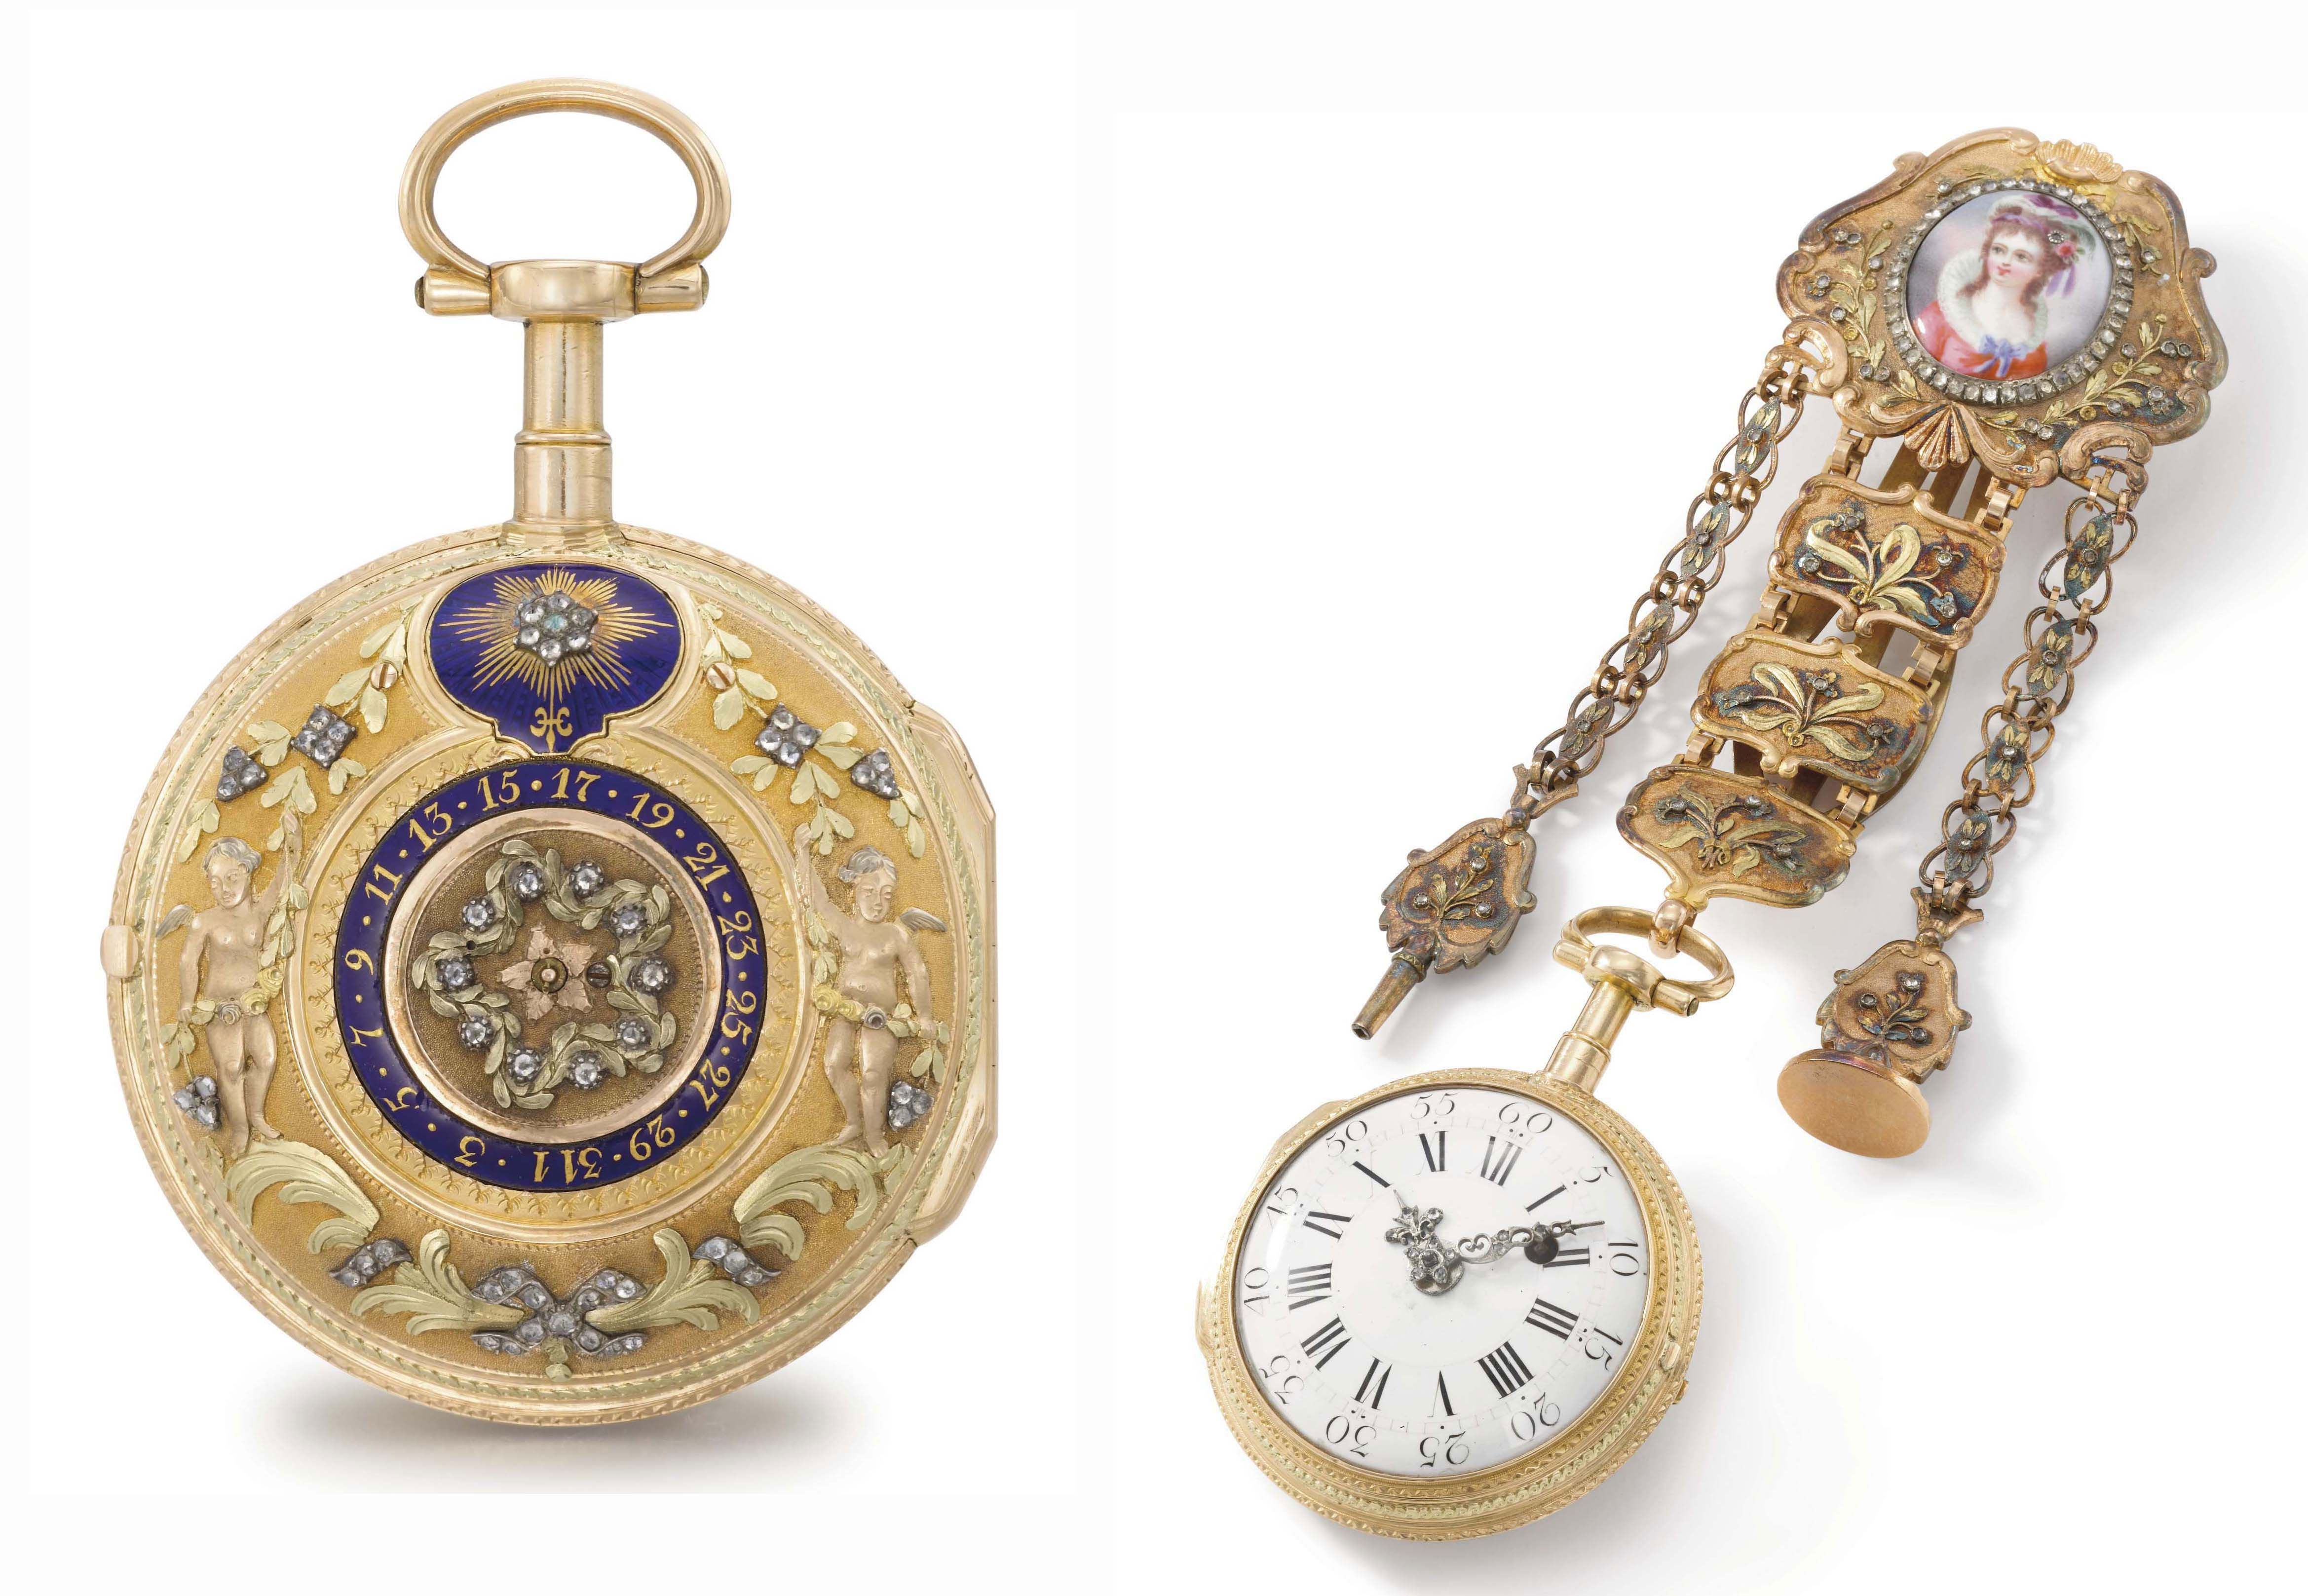 Esquivillon & Dechoudens. A highly rare and attractive 18K varicoloured gold, enamel and diamond-set double face verge watch with date and chatelaine